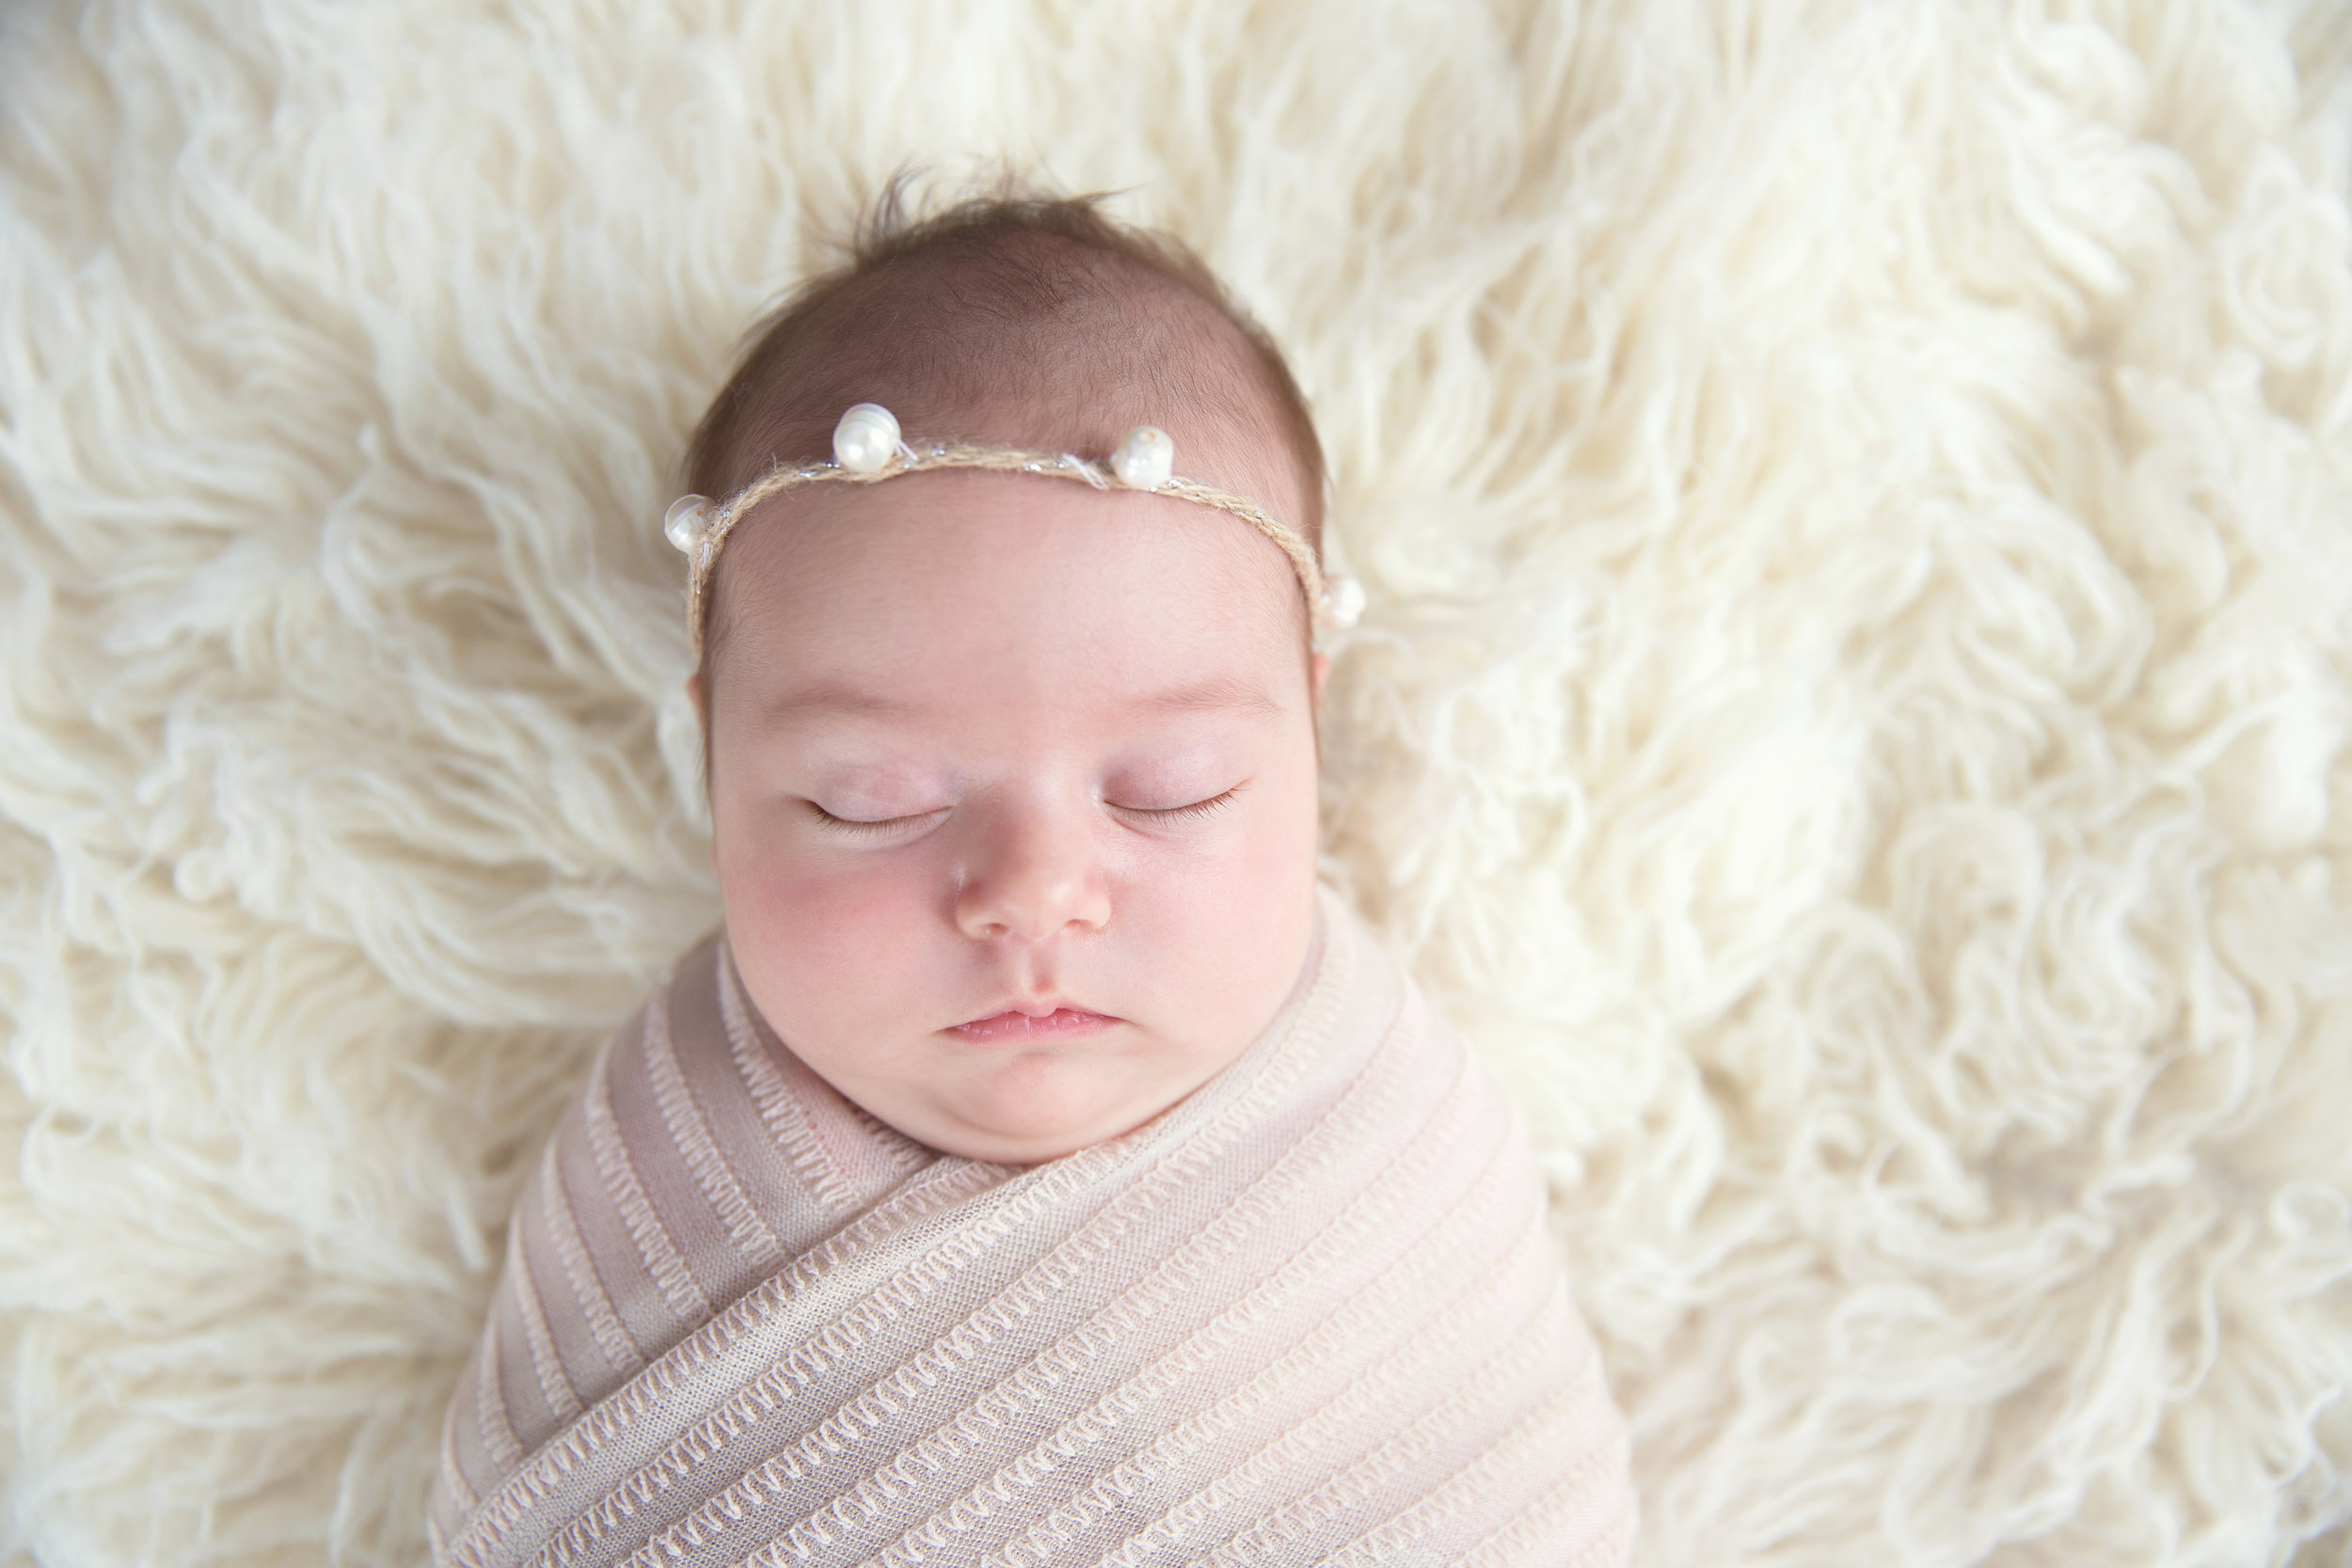 Newborn baby girl all wrapped up with a pearl headband. Newborn photographer in Airdrie, Alberta.